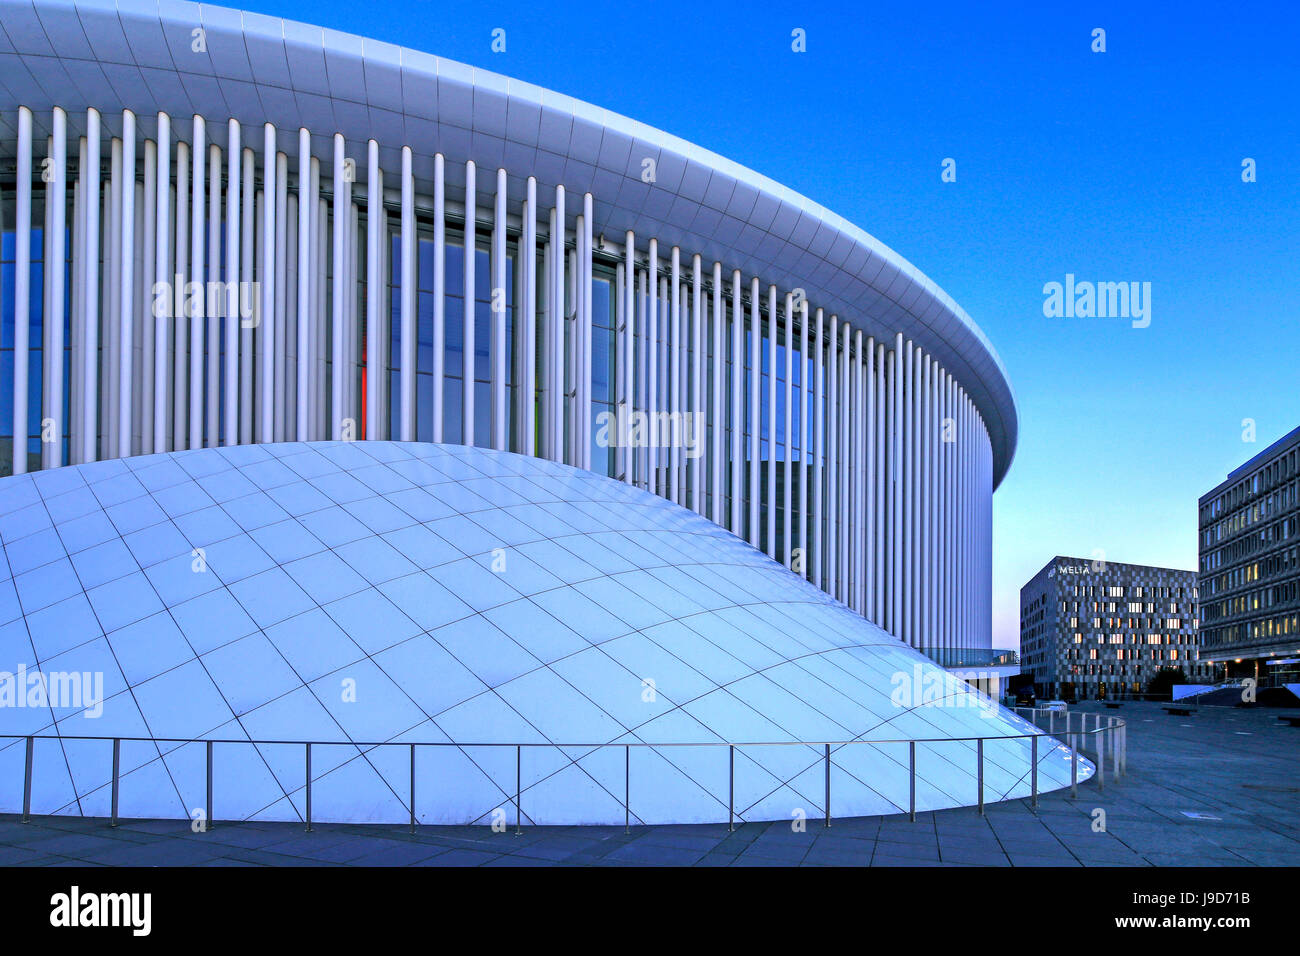 New Philharmonic Hall on Kirchberg in Luxembourg City, Grand Duchy of Luxembourg, Europe - Stock Image